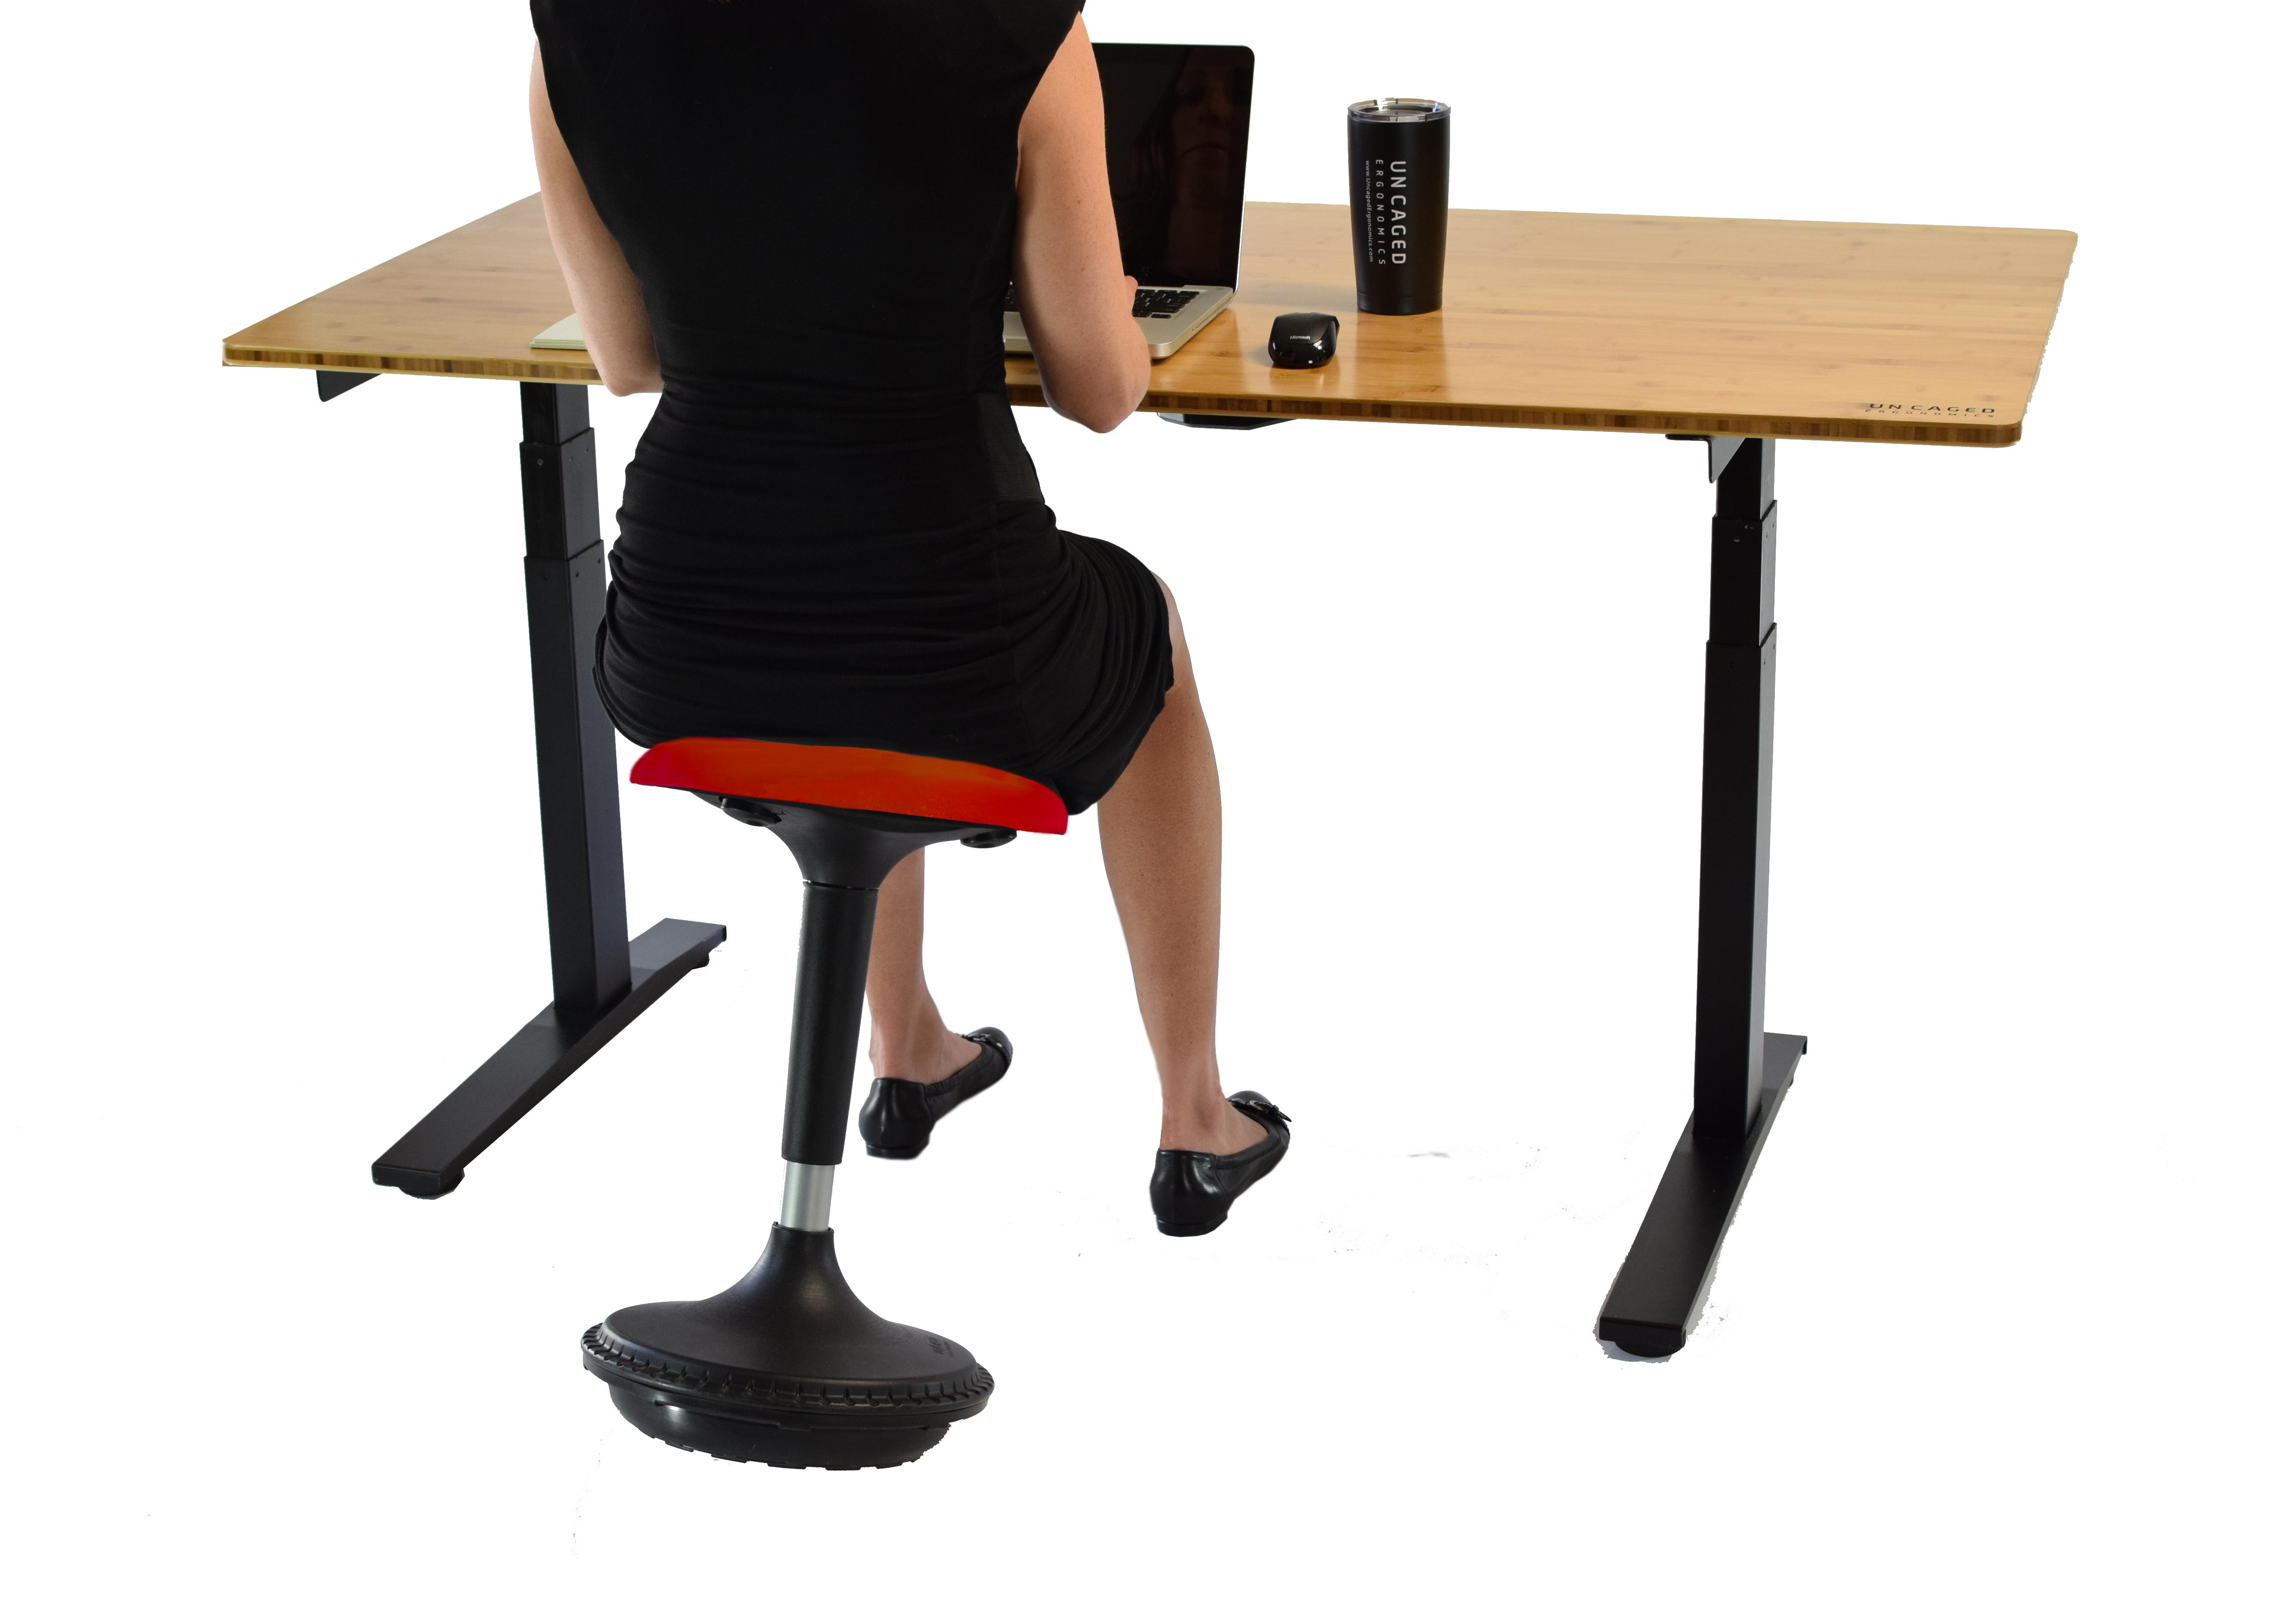 Wobble Stool Adjustable Height Active Sitting Balance